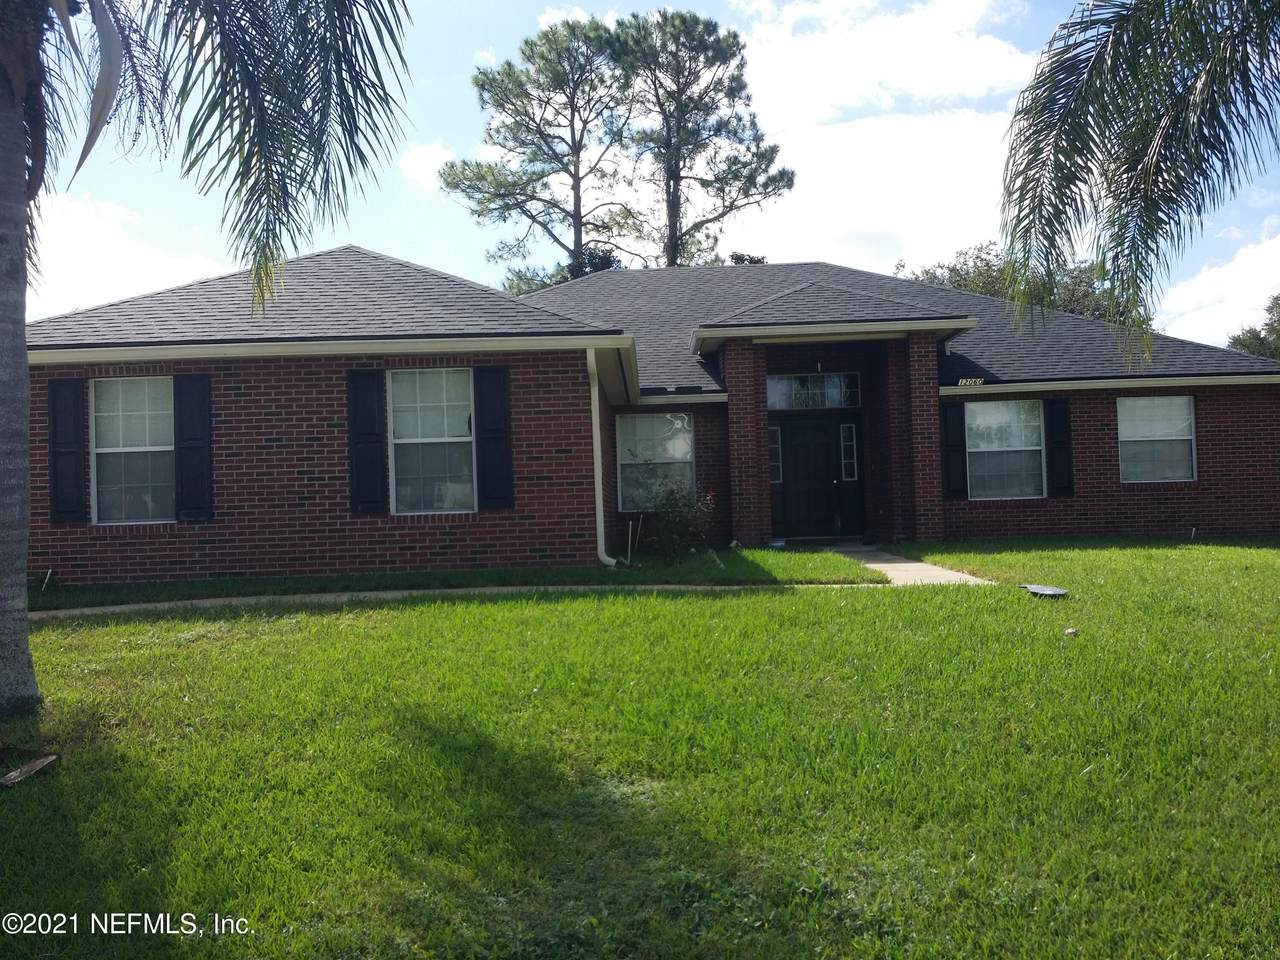 12060 Colby Creek Dr - Photo 1